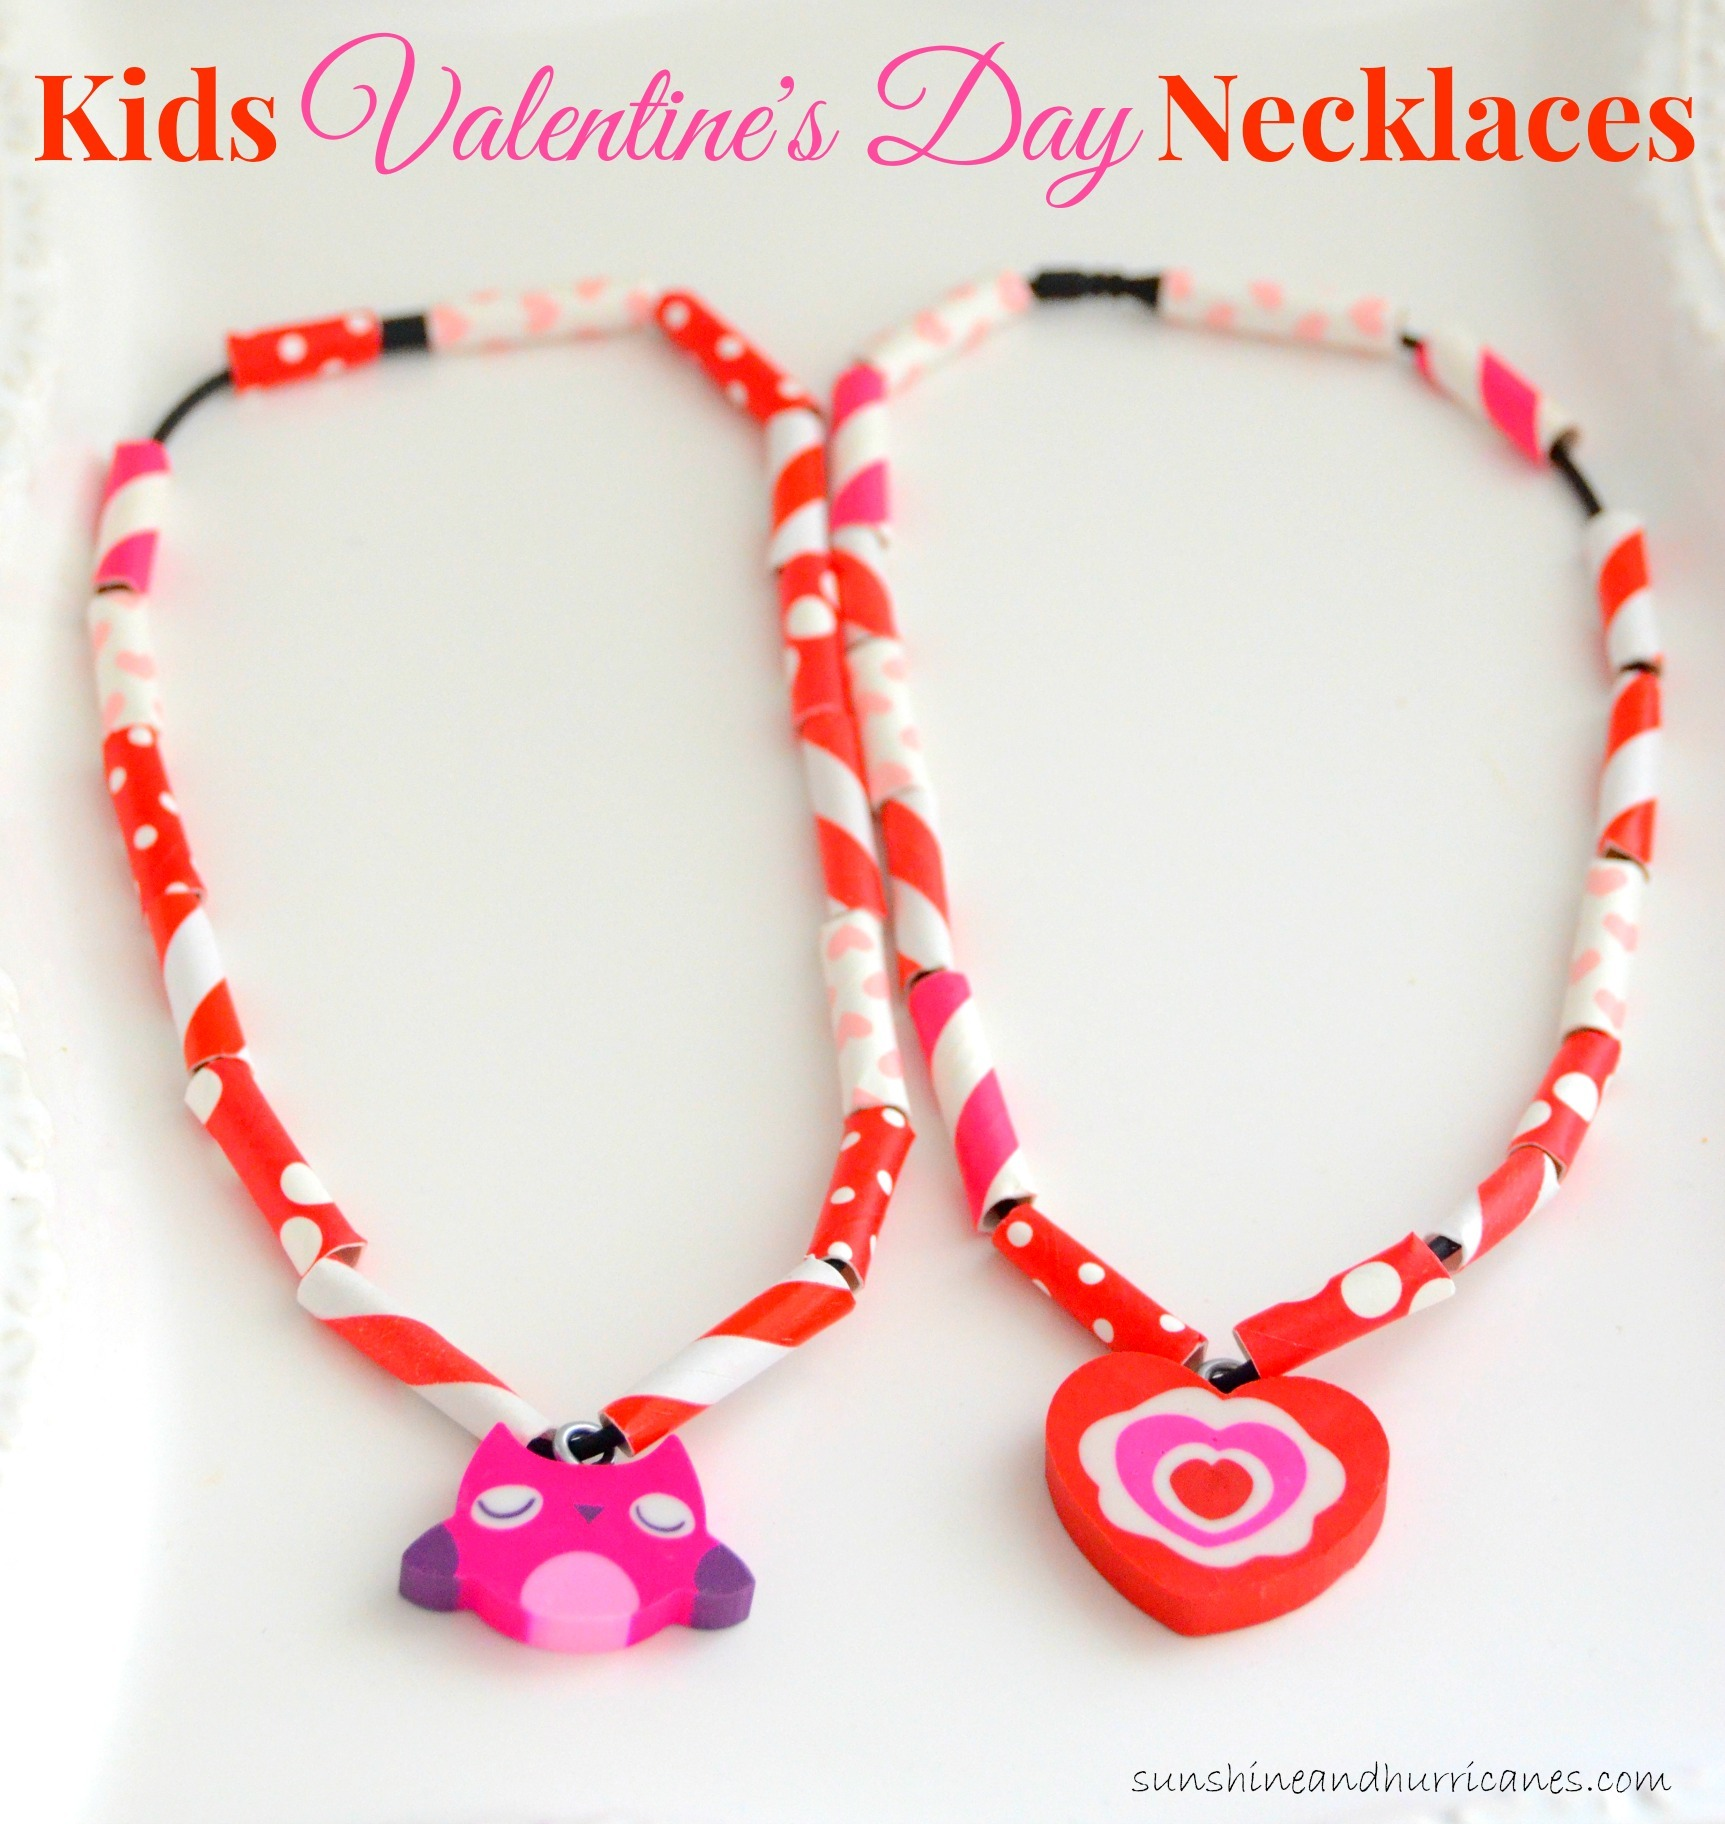 Easy valentine crafts for kindergarten - Gather